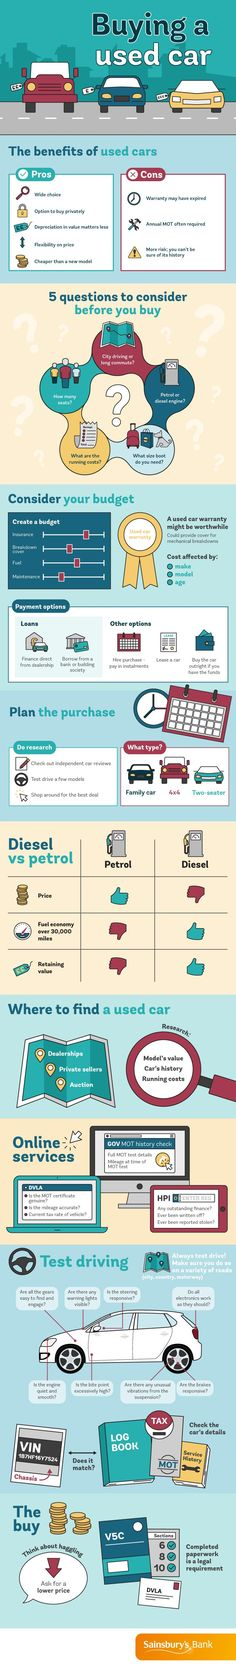 Buying a Used Car #infographic #Cars #Transportation